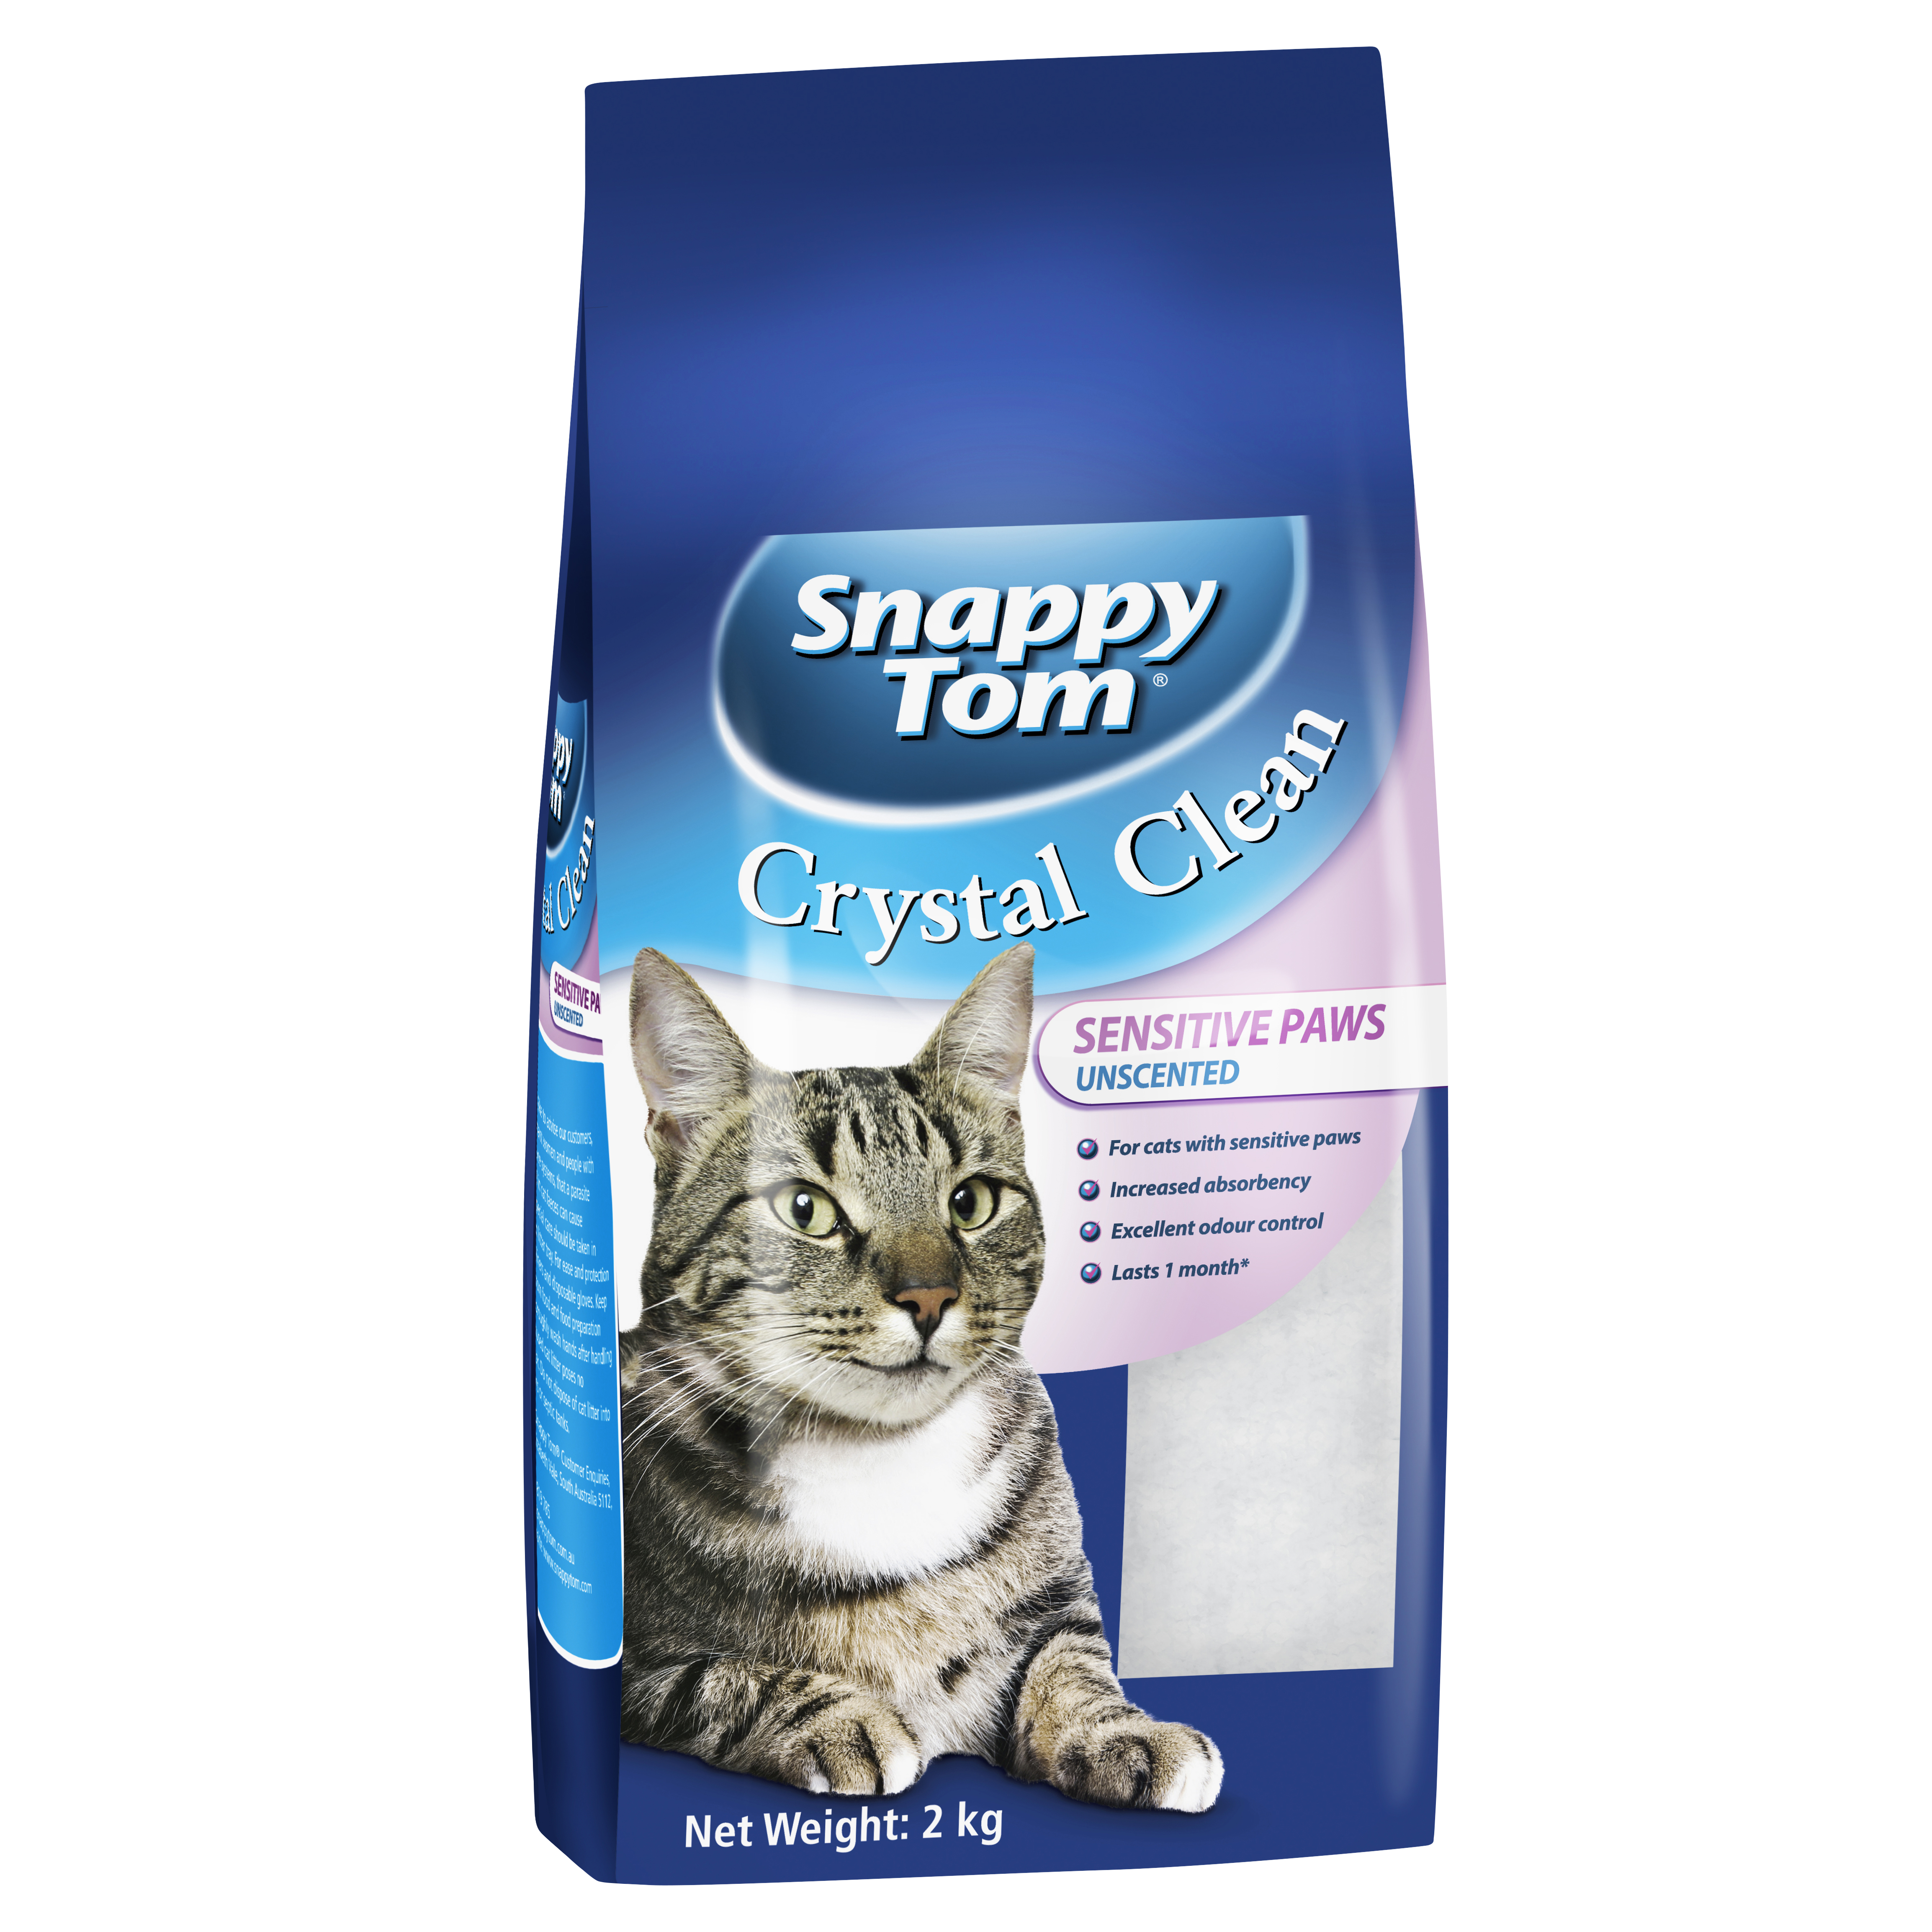 snappy-tom-crystal-clean-sensitive-paws-cat-litter-unscented-2kg-0